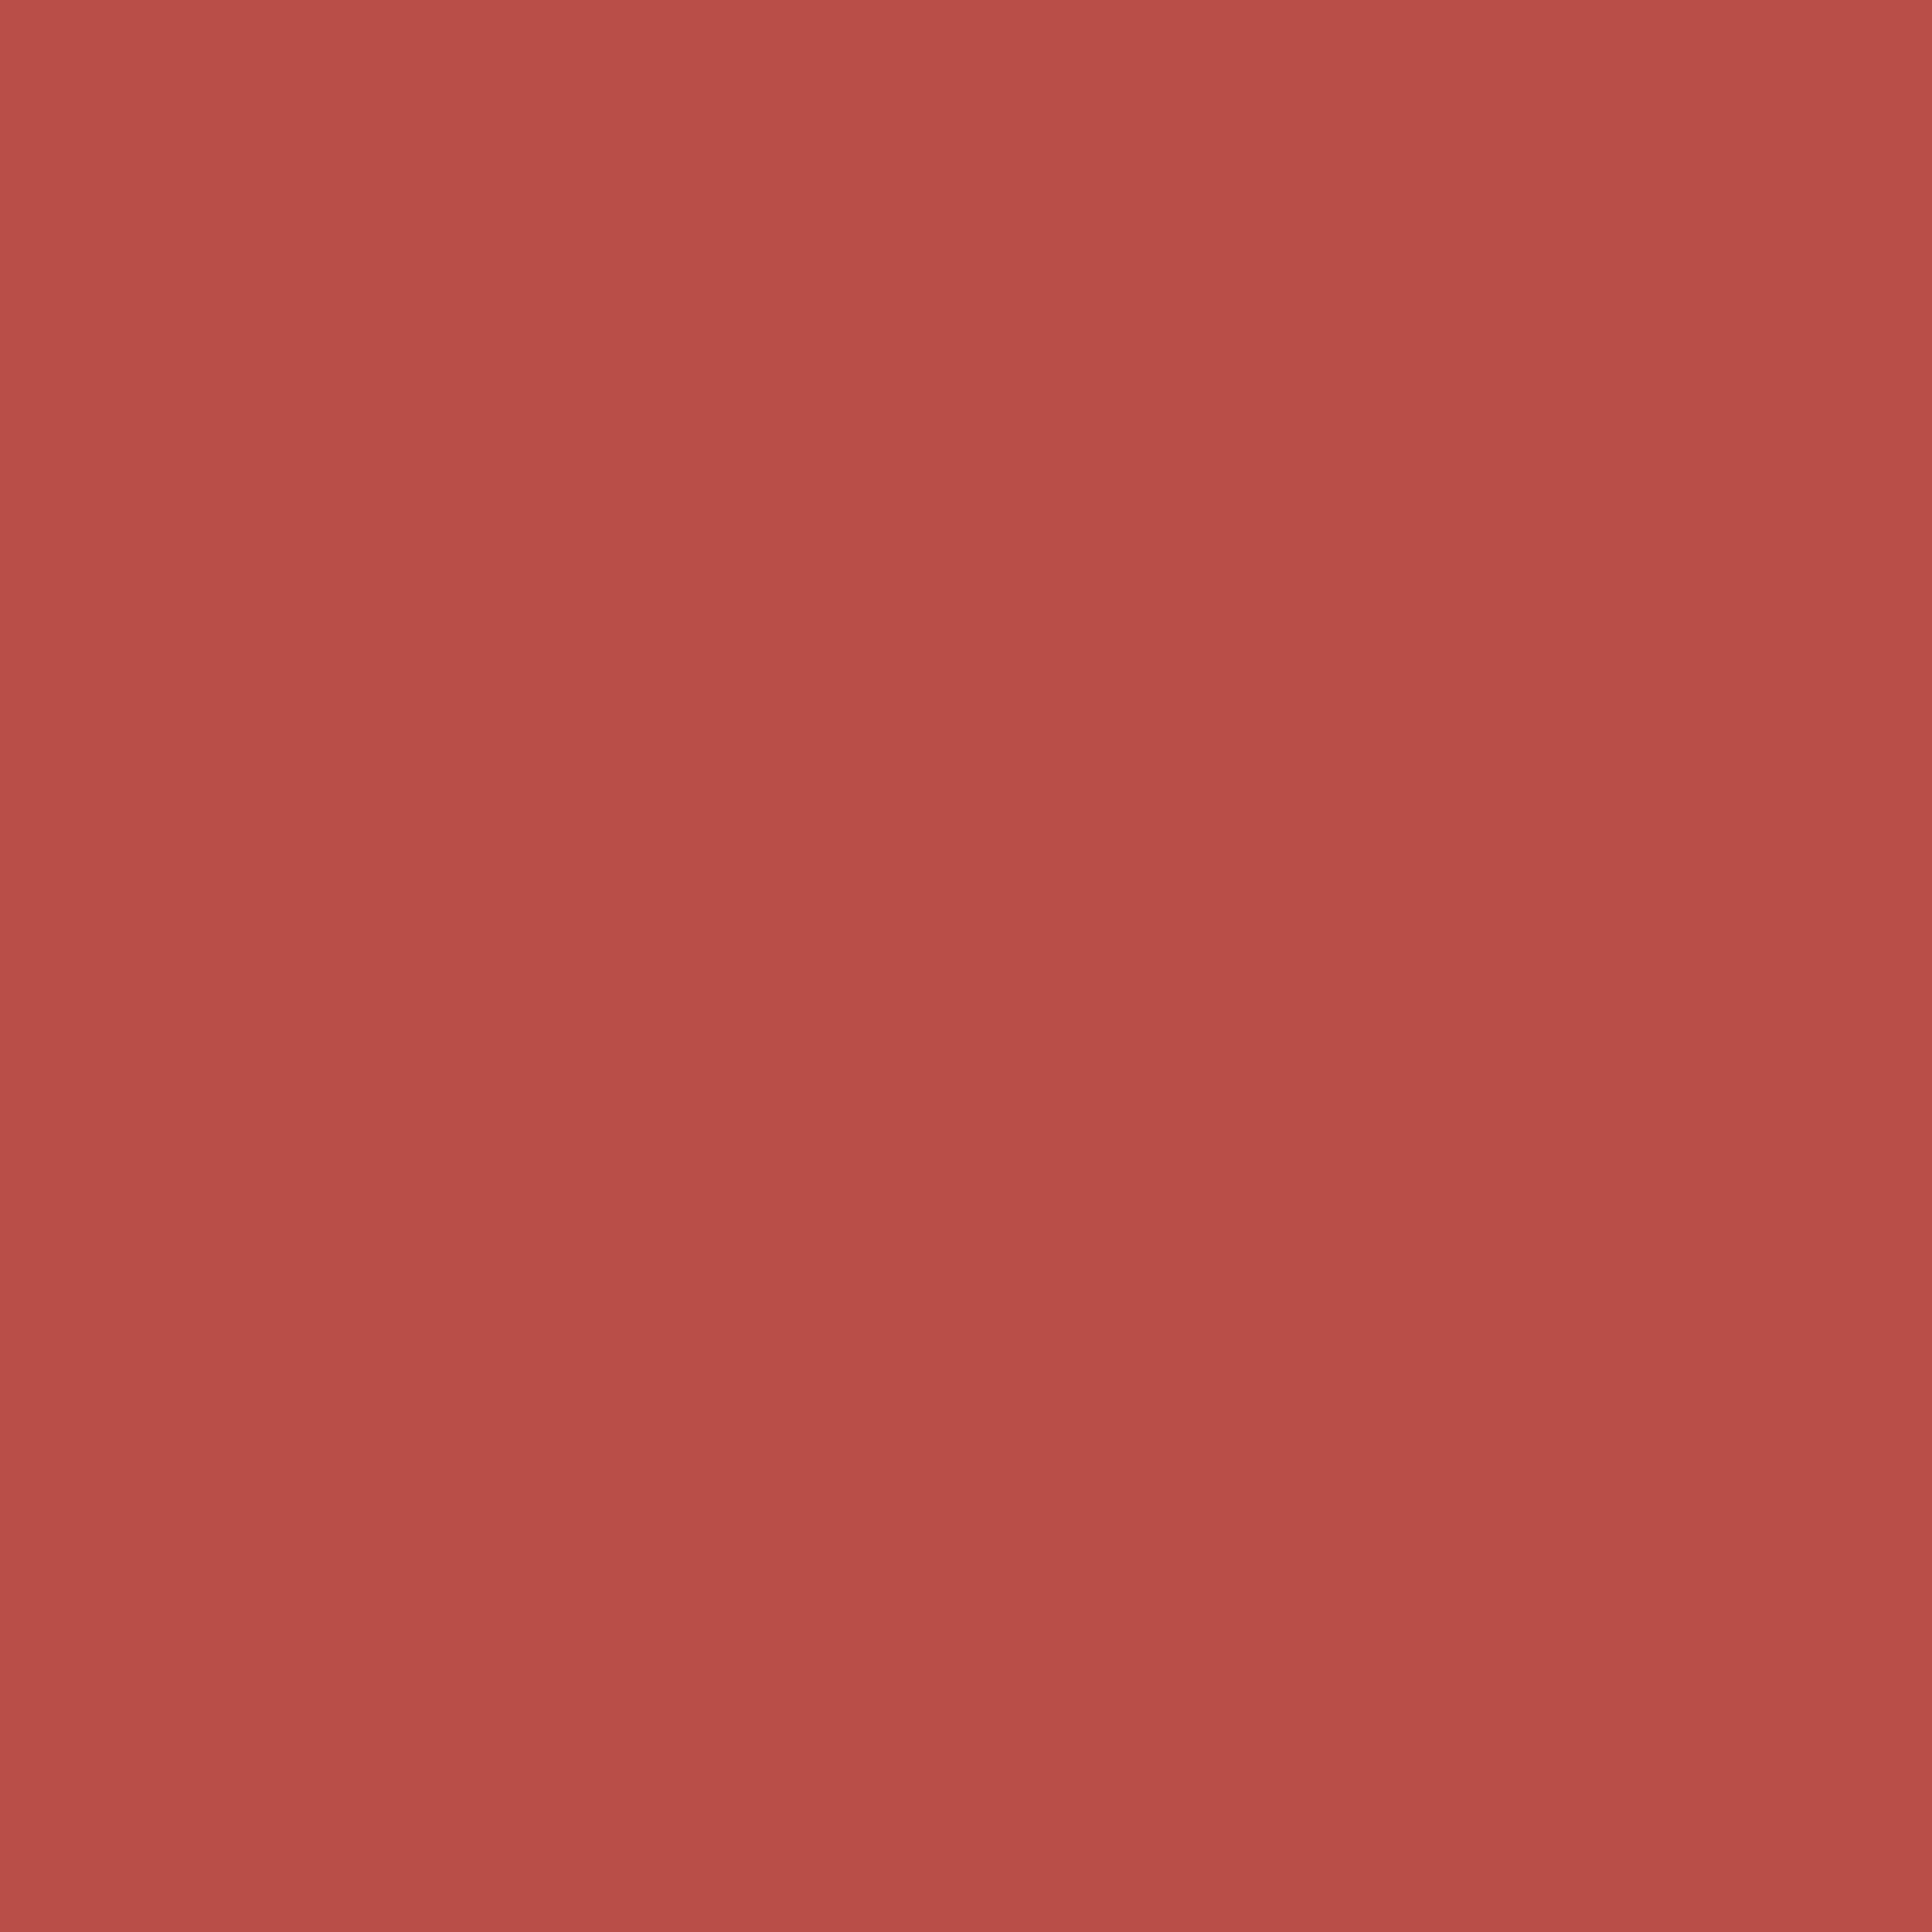 2732x2732 Deep Chestnut Solid Color Background